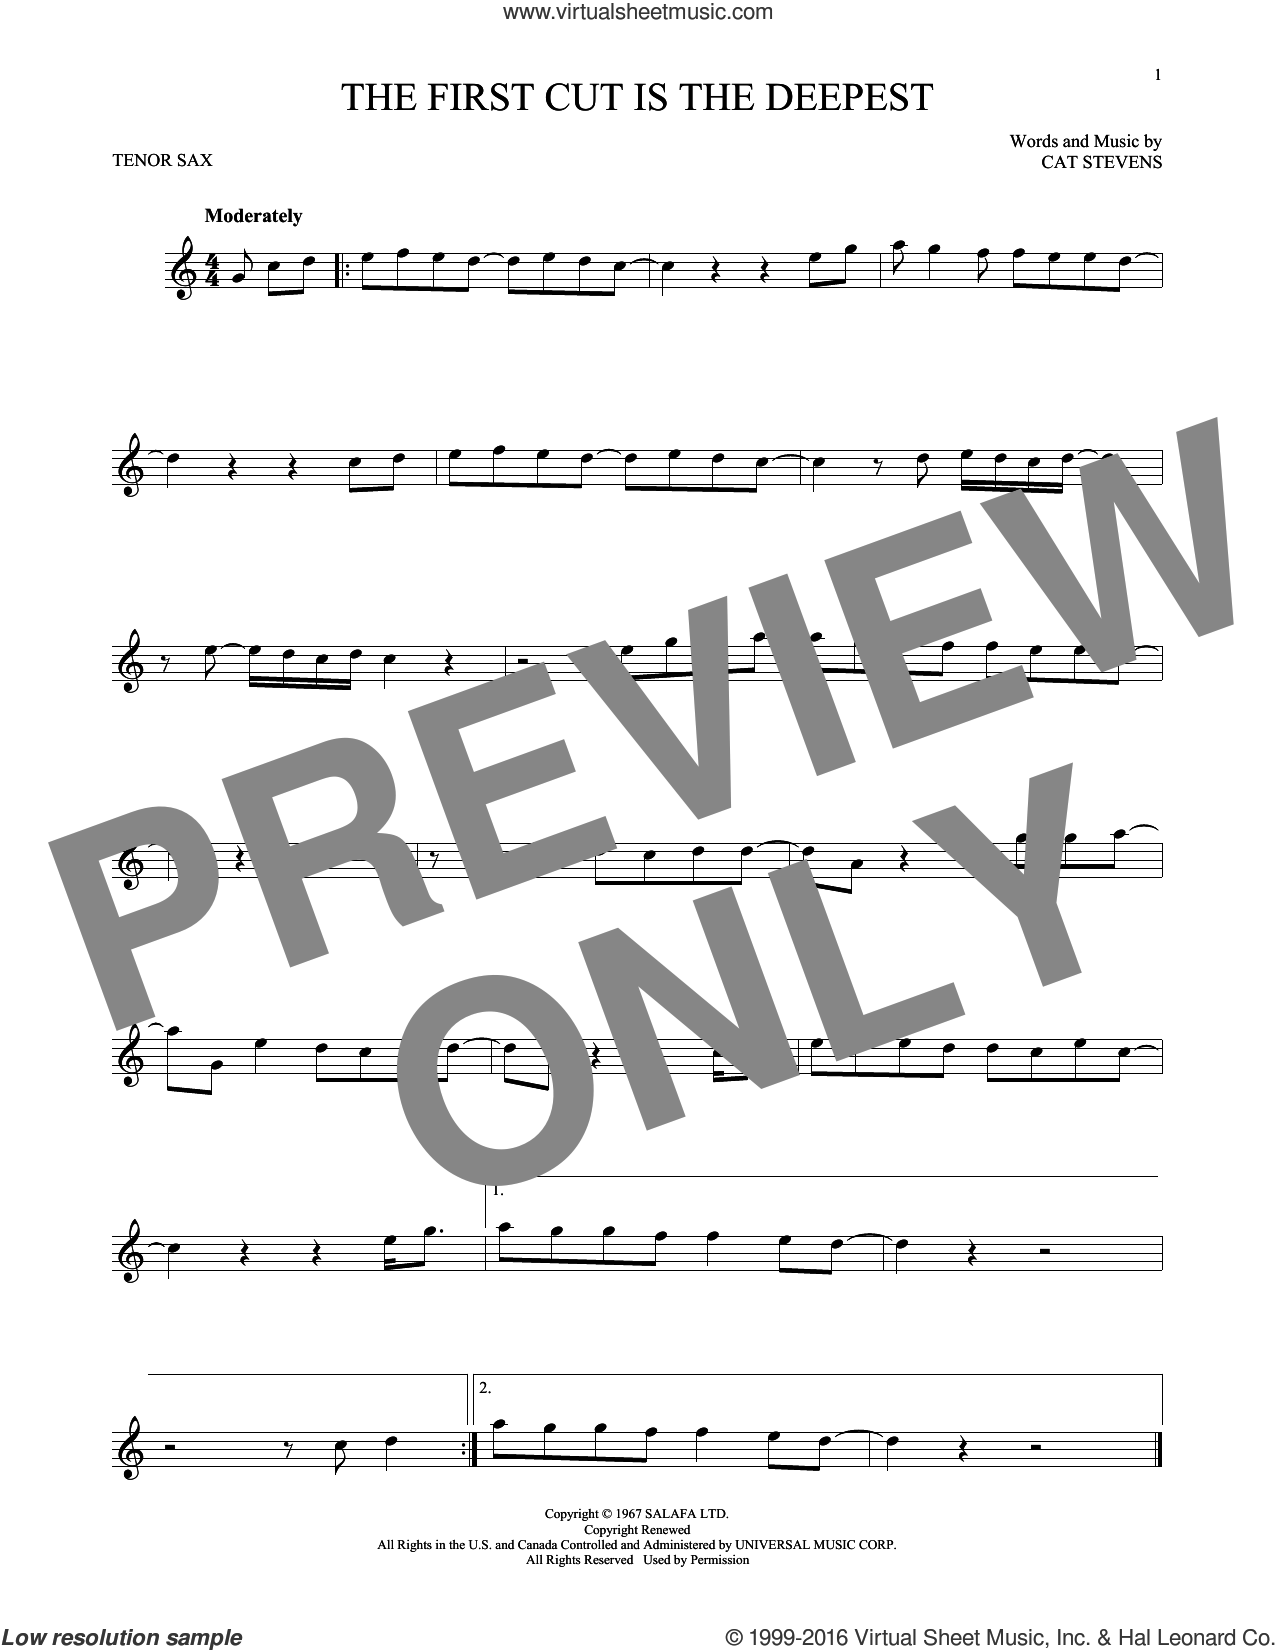 The First Cut Is The Deepest sheet music for tenor saxophone solo by Cat Stevens, Rod Stewart and Sheryl Crow, intermediate skill level